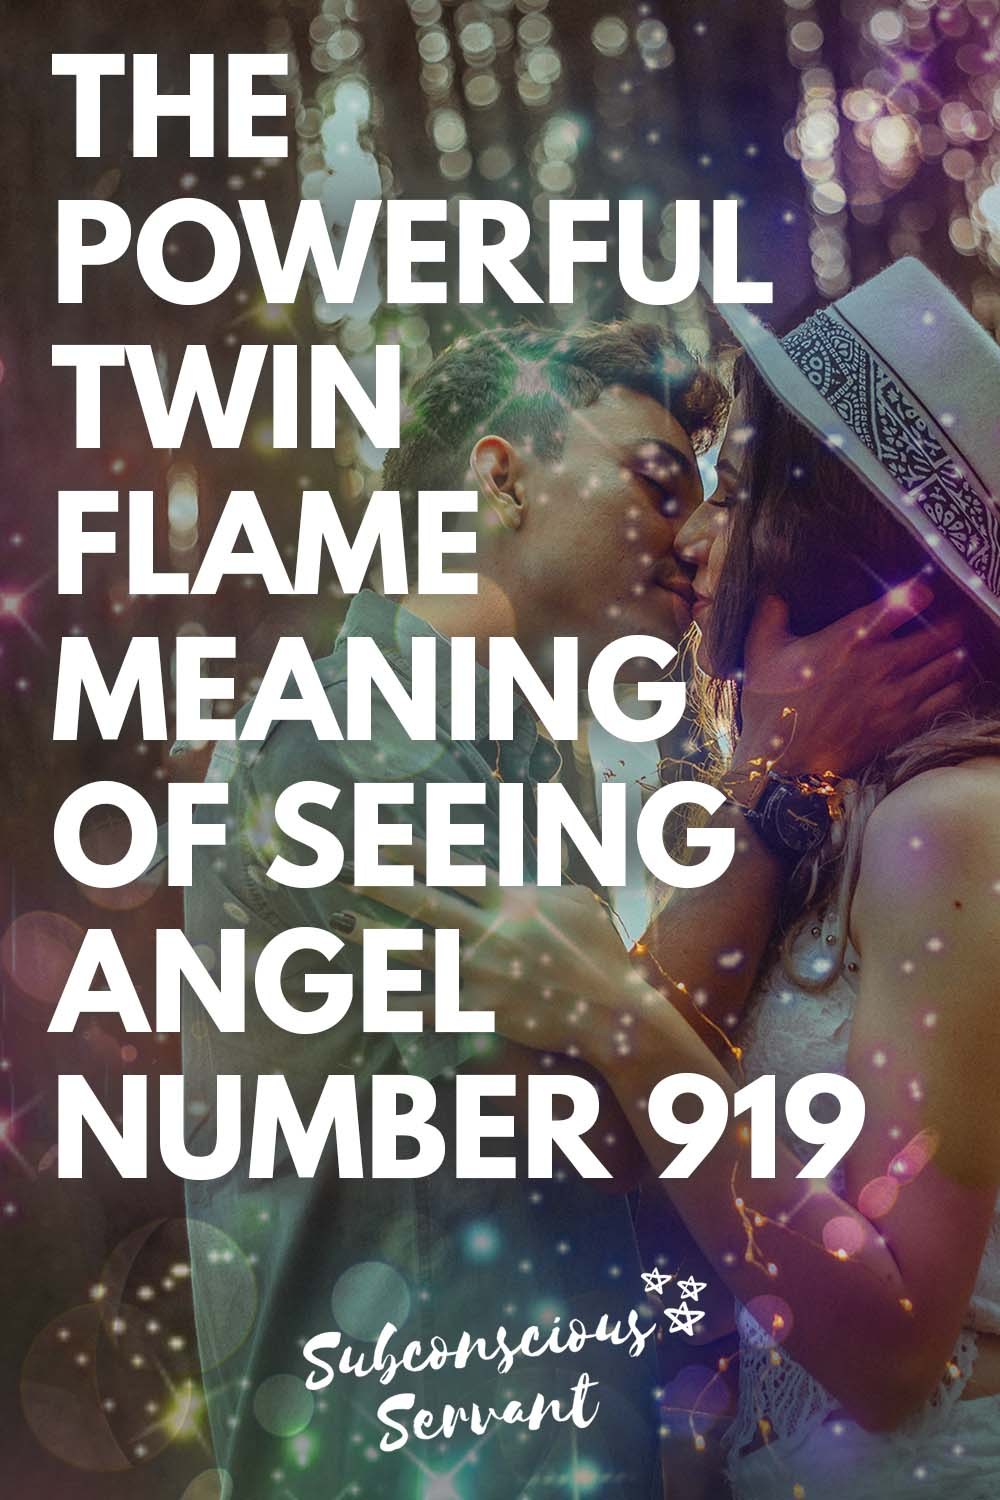 The Powerful Twin Flame Meanings Of Seeing Angel Number 919